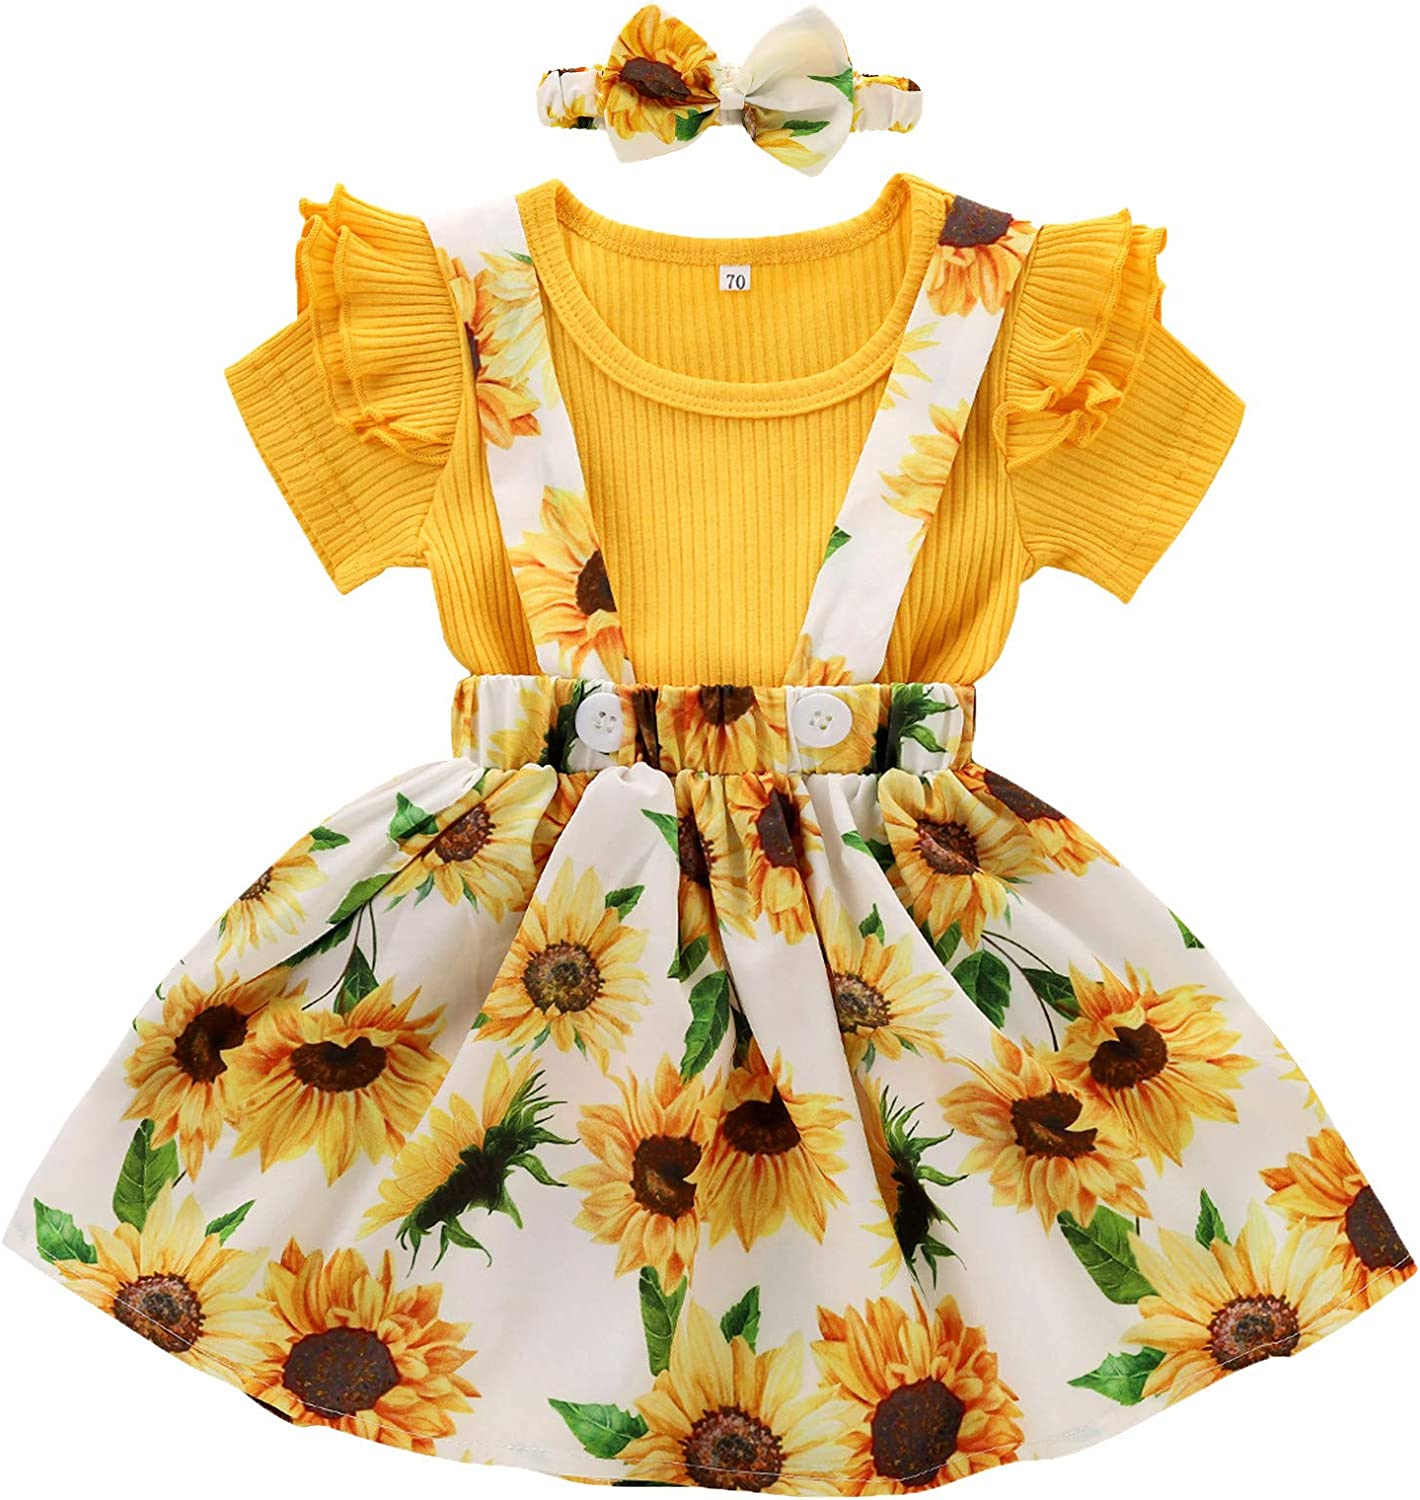 Outstanding Fankle Baby Max 45% OFF Girl Sun Flower Print Infant Ruffle Outfits Short Sl